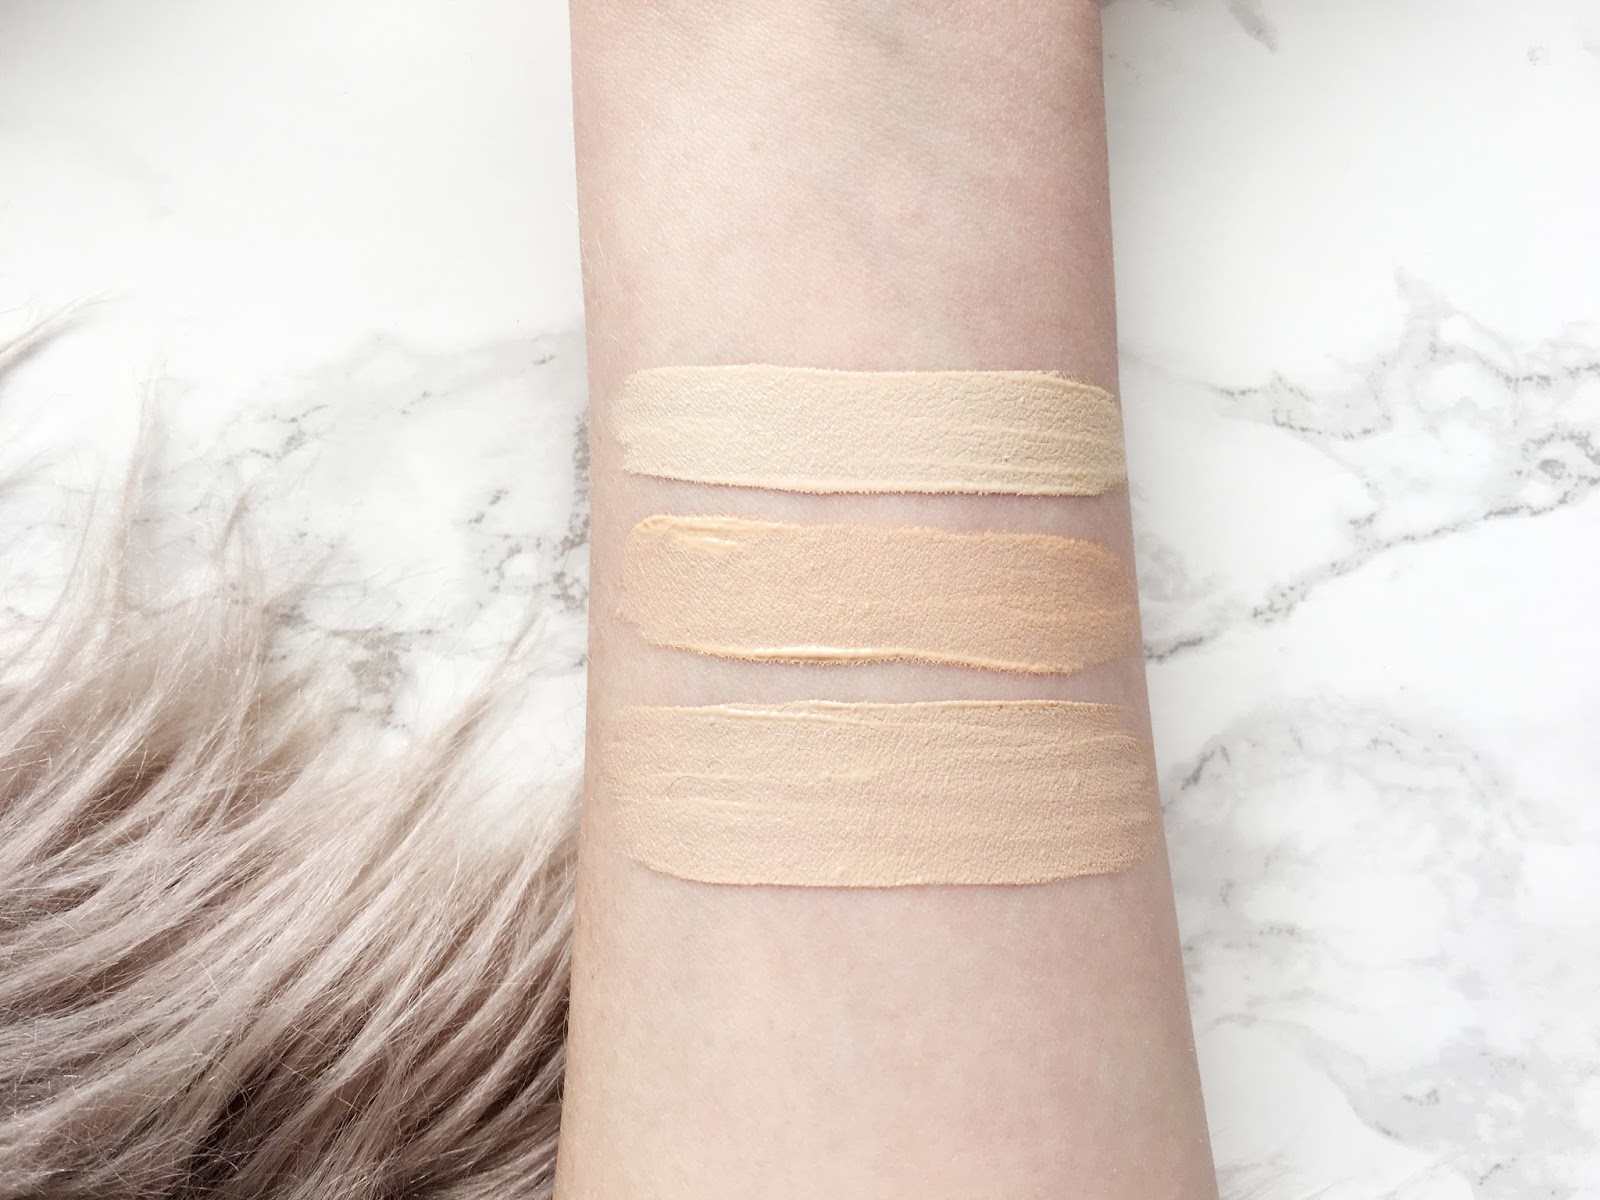 My Top Three Favourite Concealer Swatches